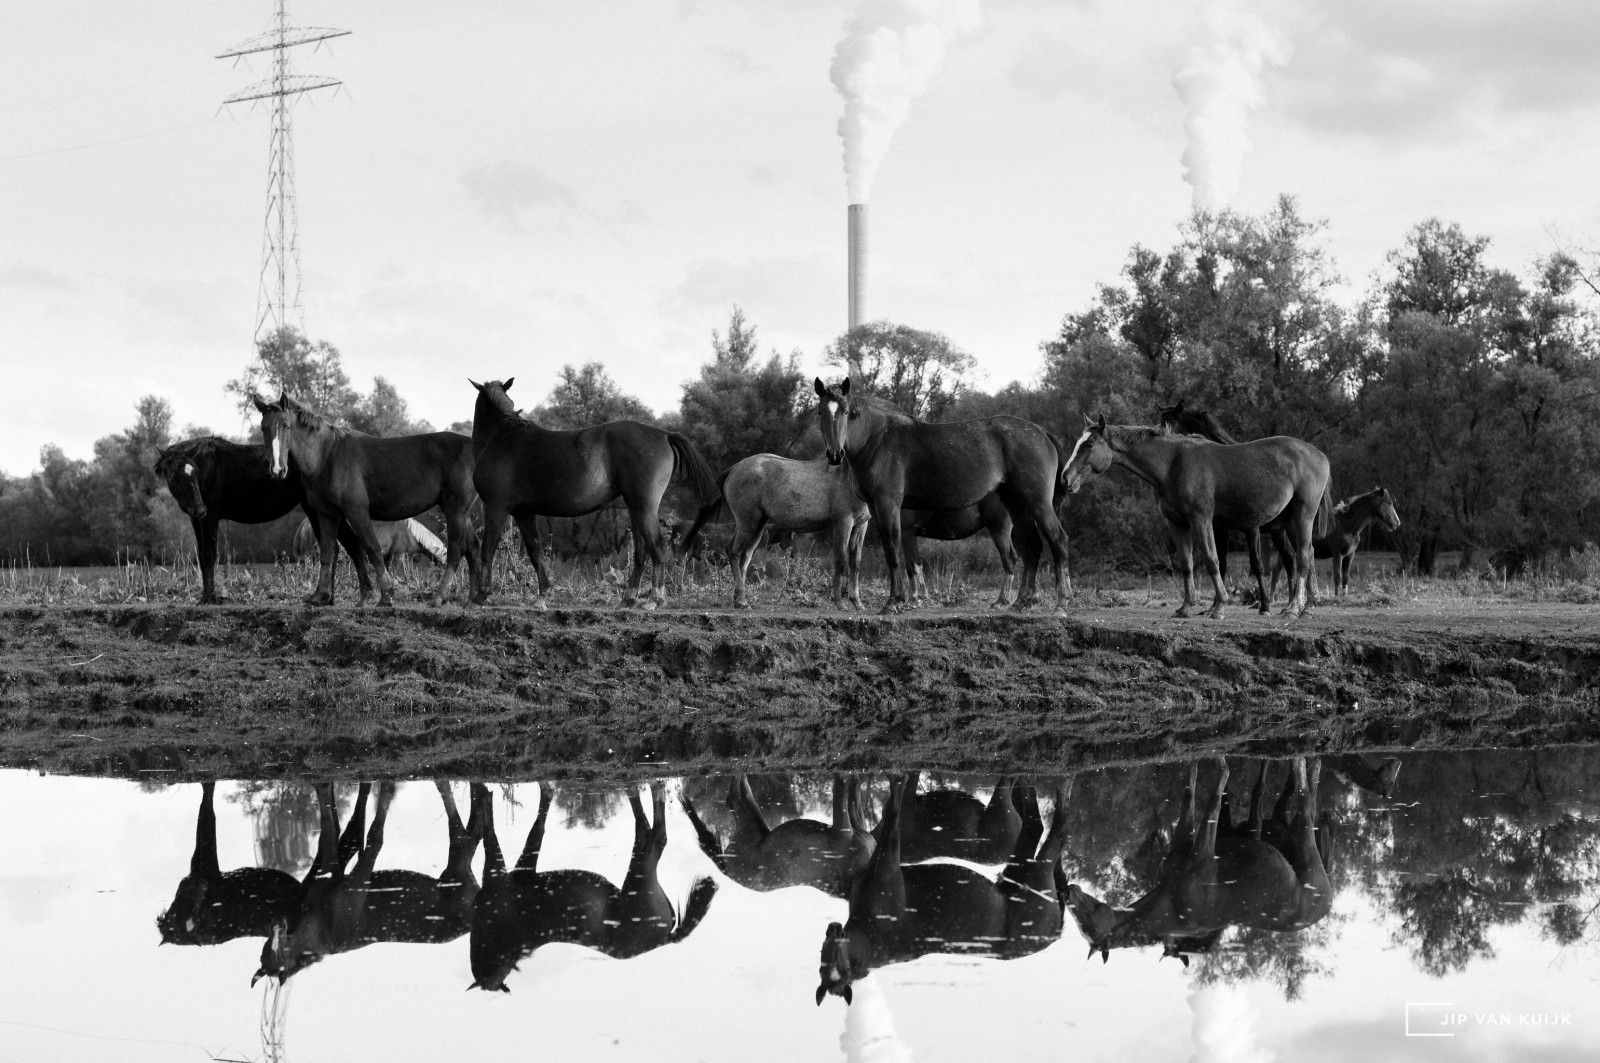 netherlands_biesbosch_horses_leica_s_medium_format_70mm_summarit_jipvankuijk_copyright